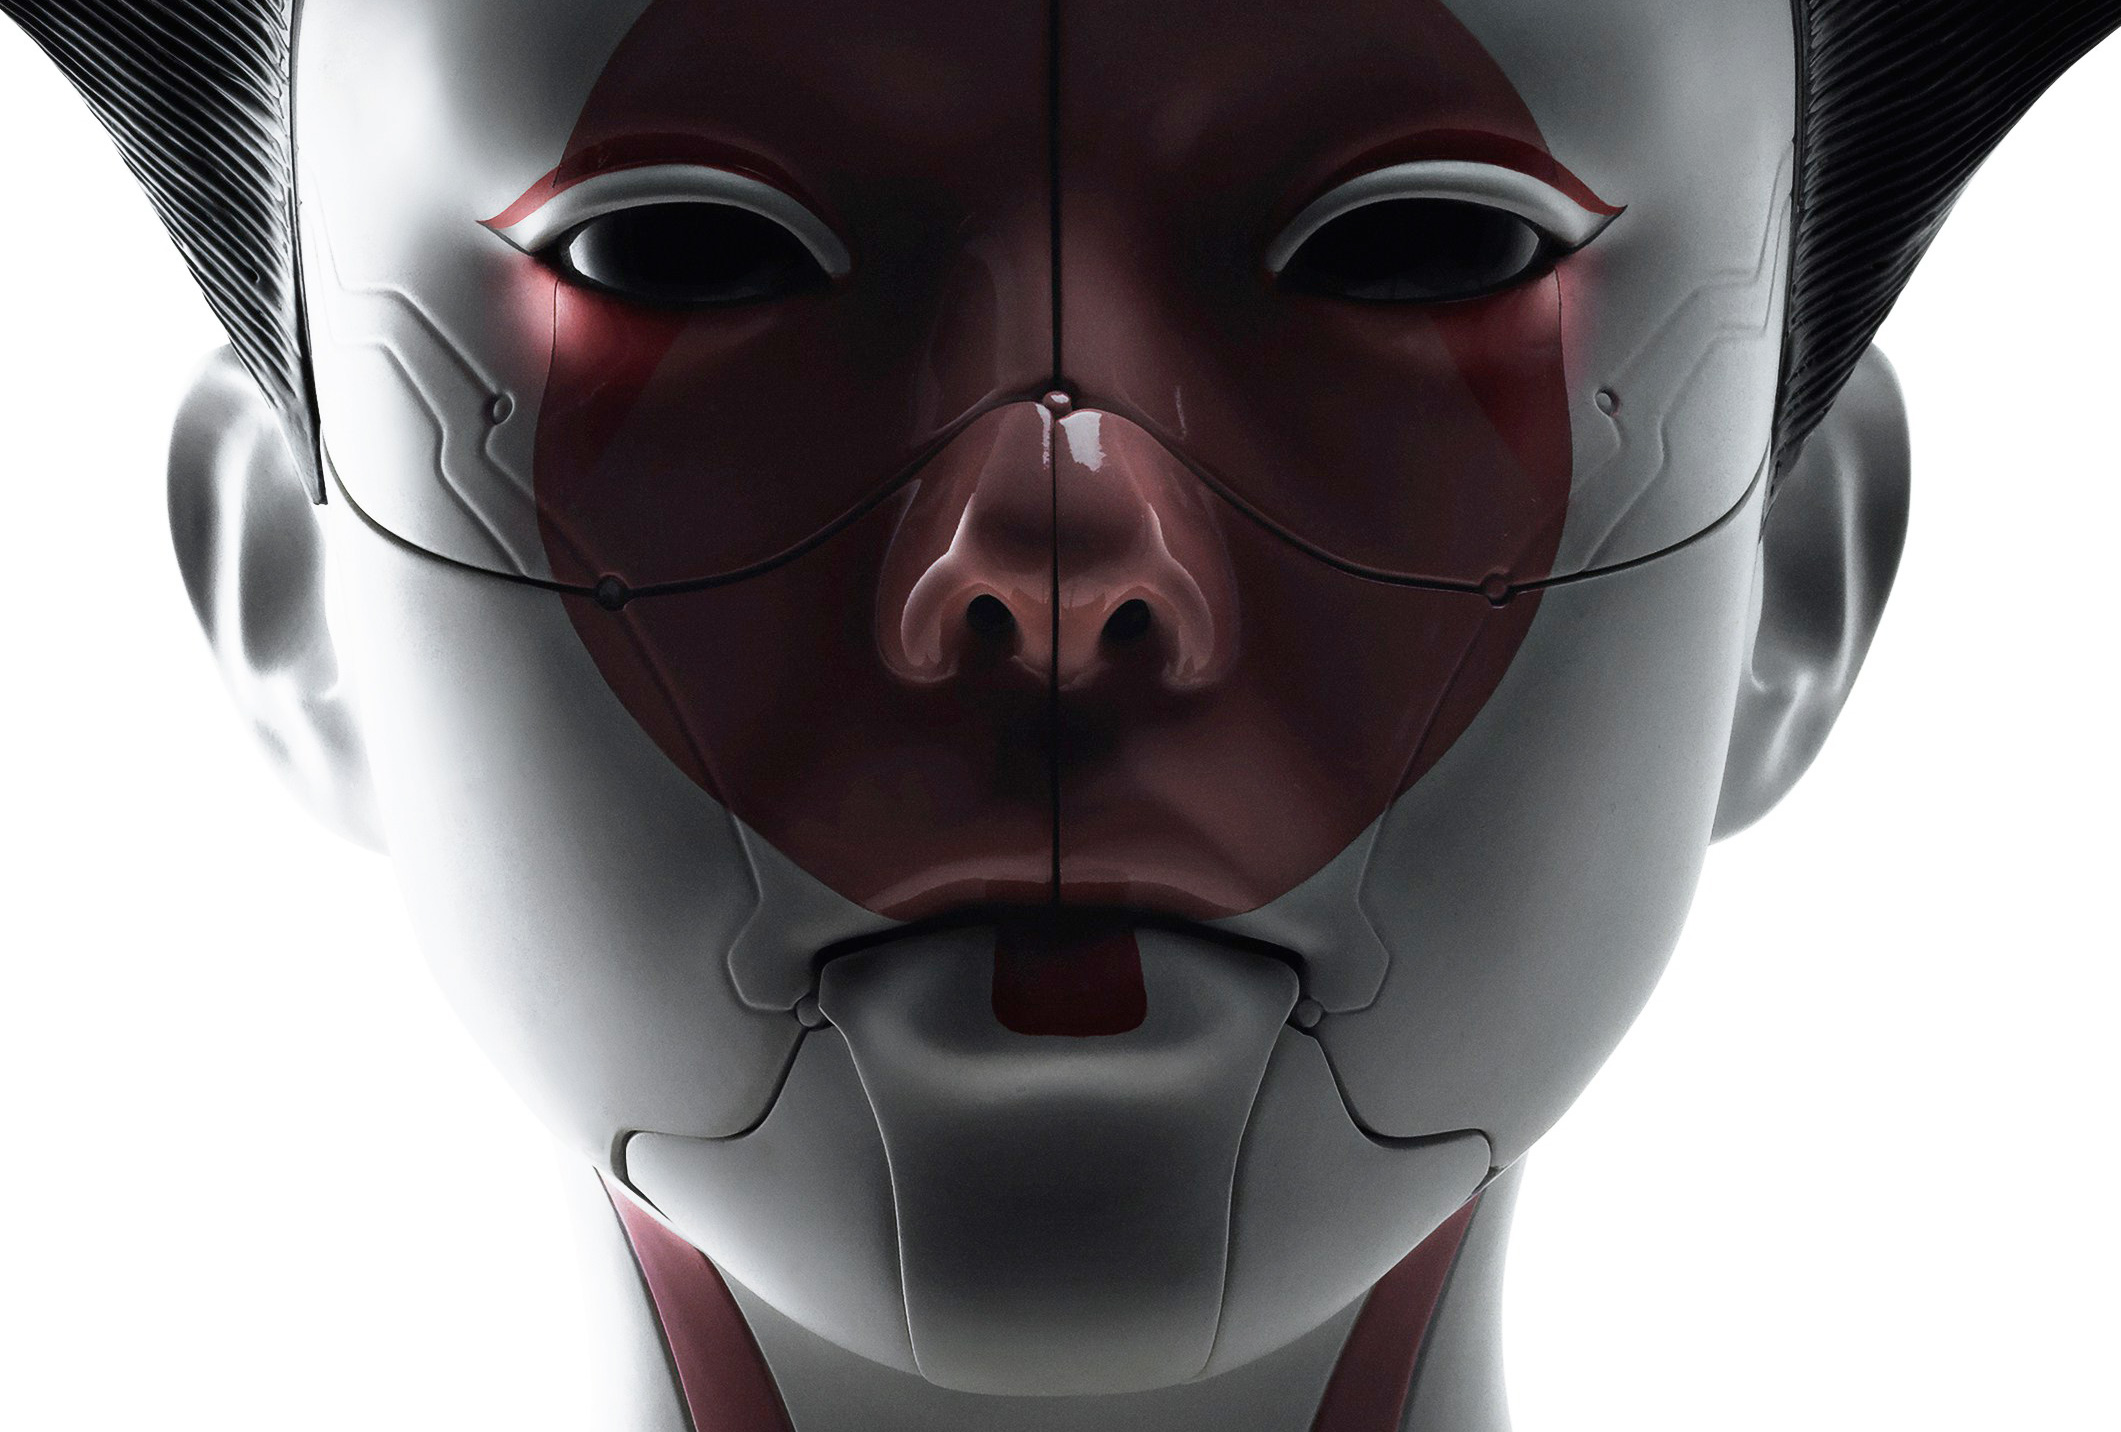 ghost in the shell robot geisha po.jpg